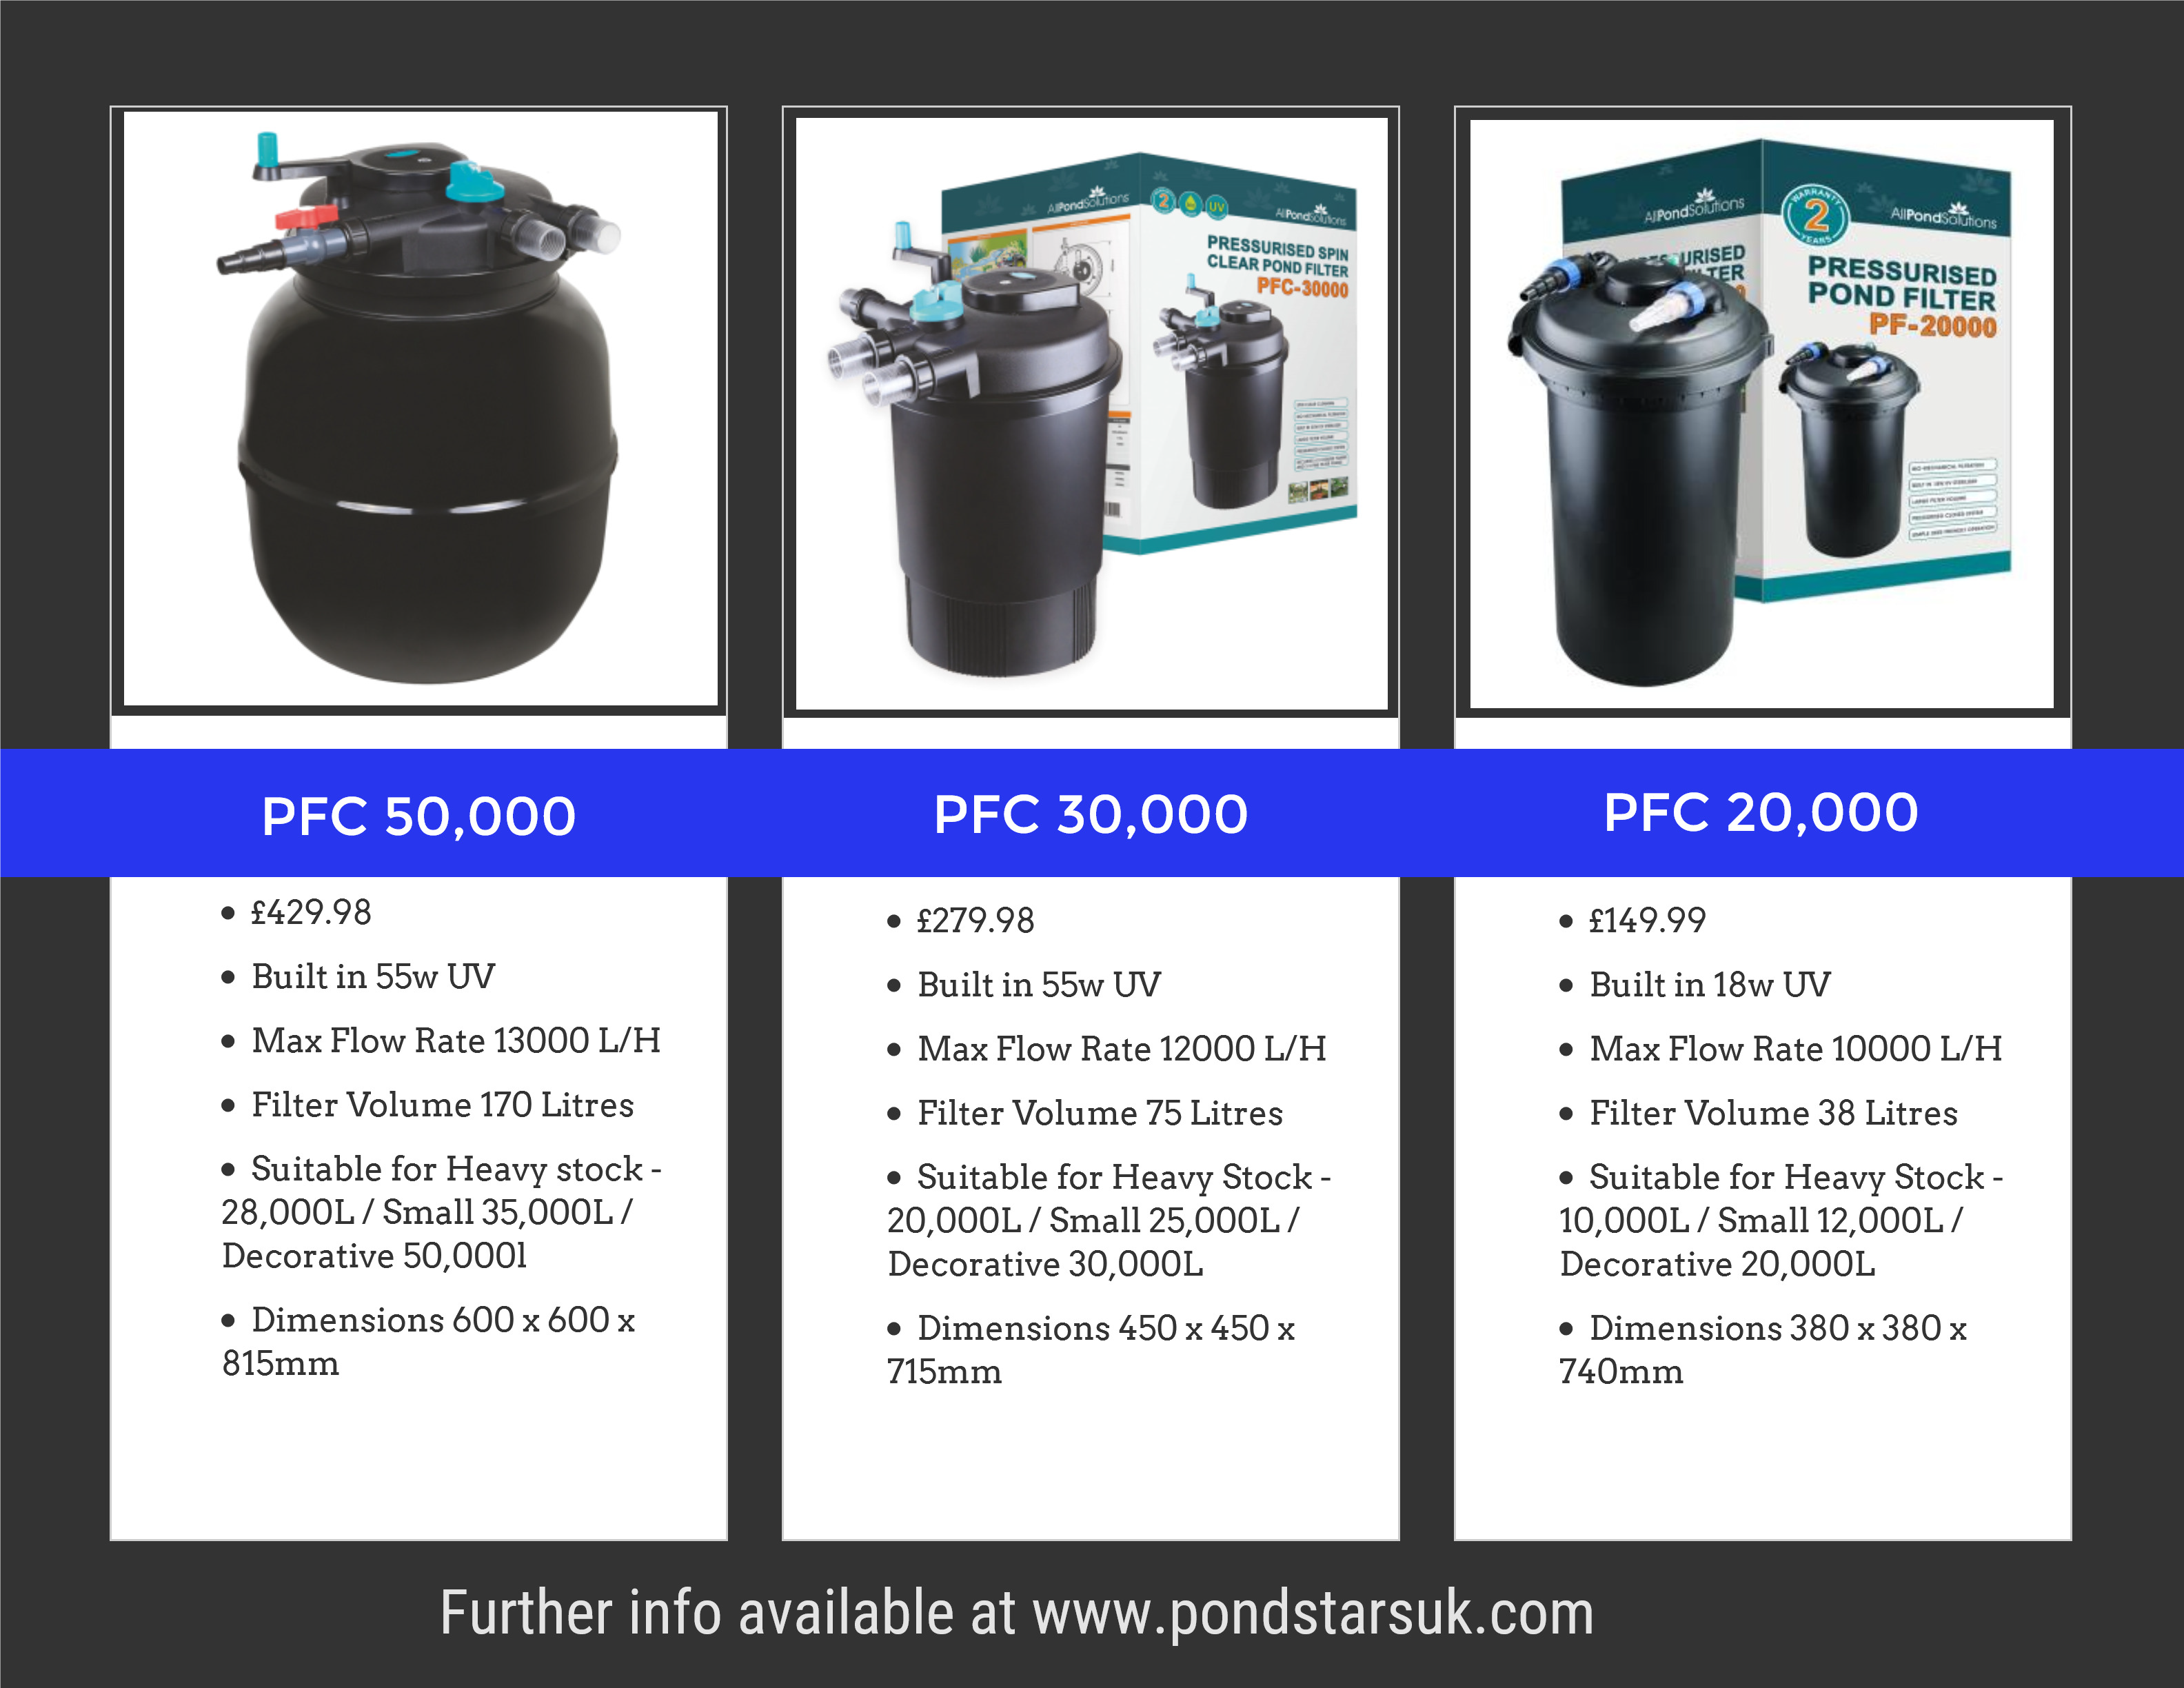 Pressurised pond filter what 39 s best for your garden pond for Best pond pressure filter